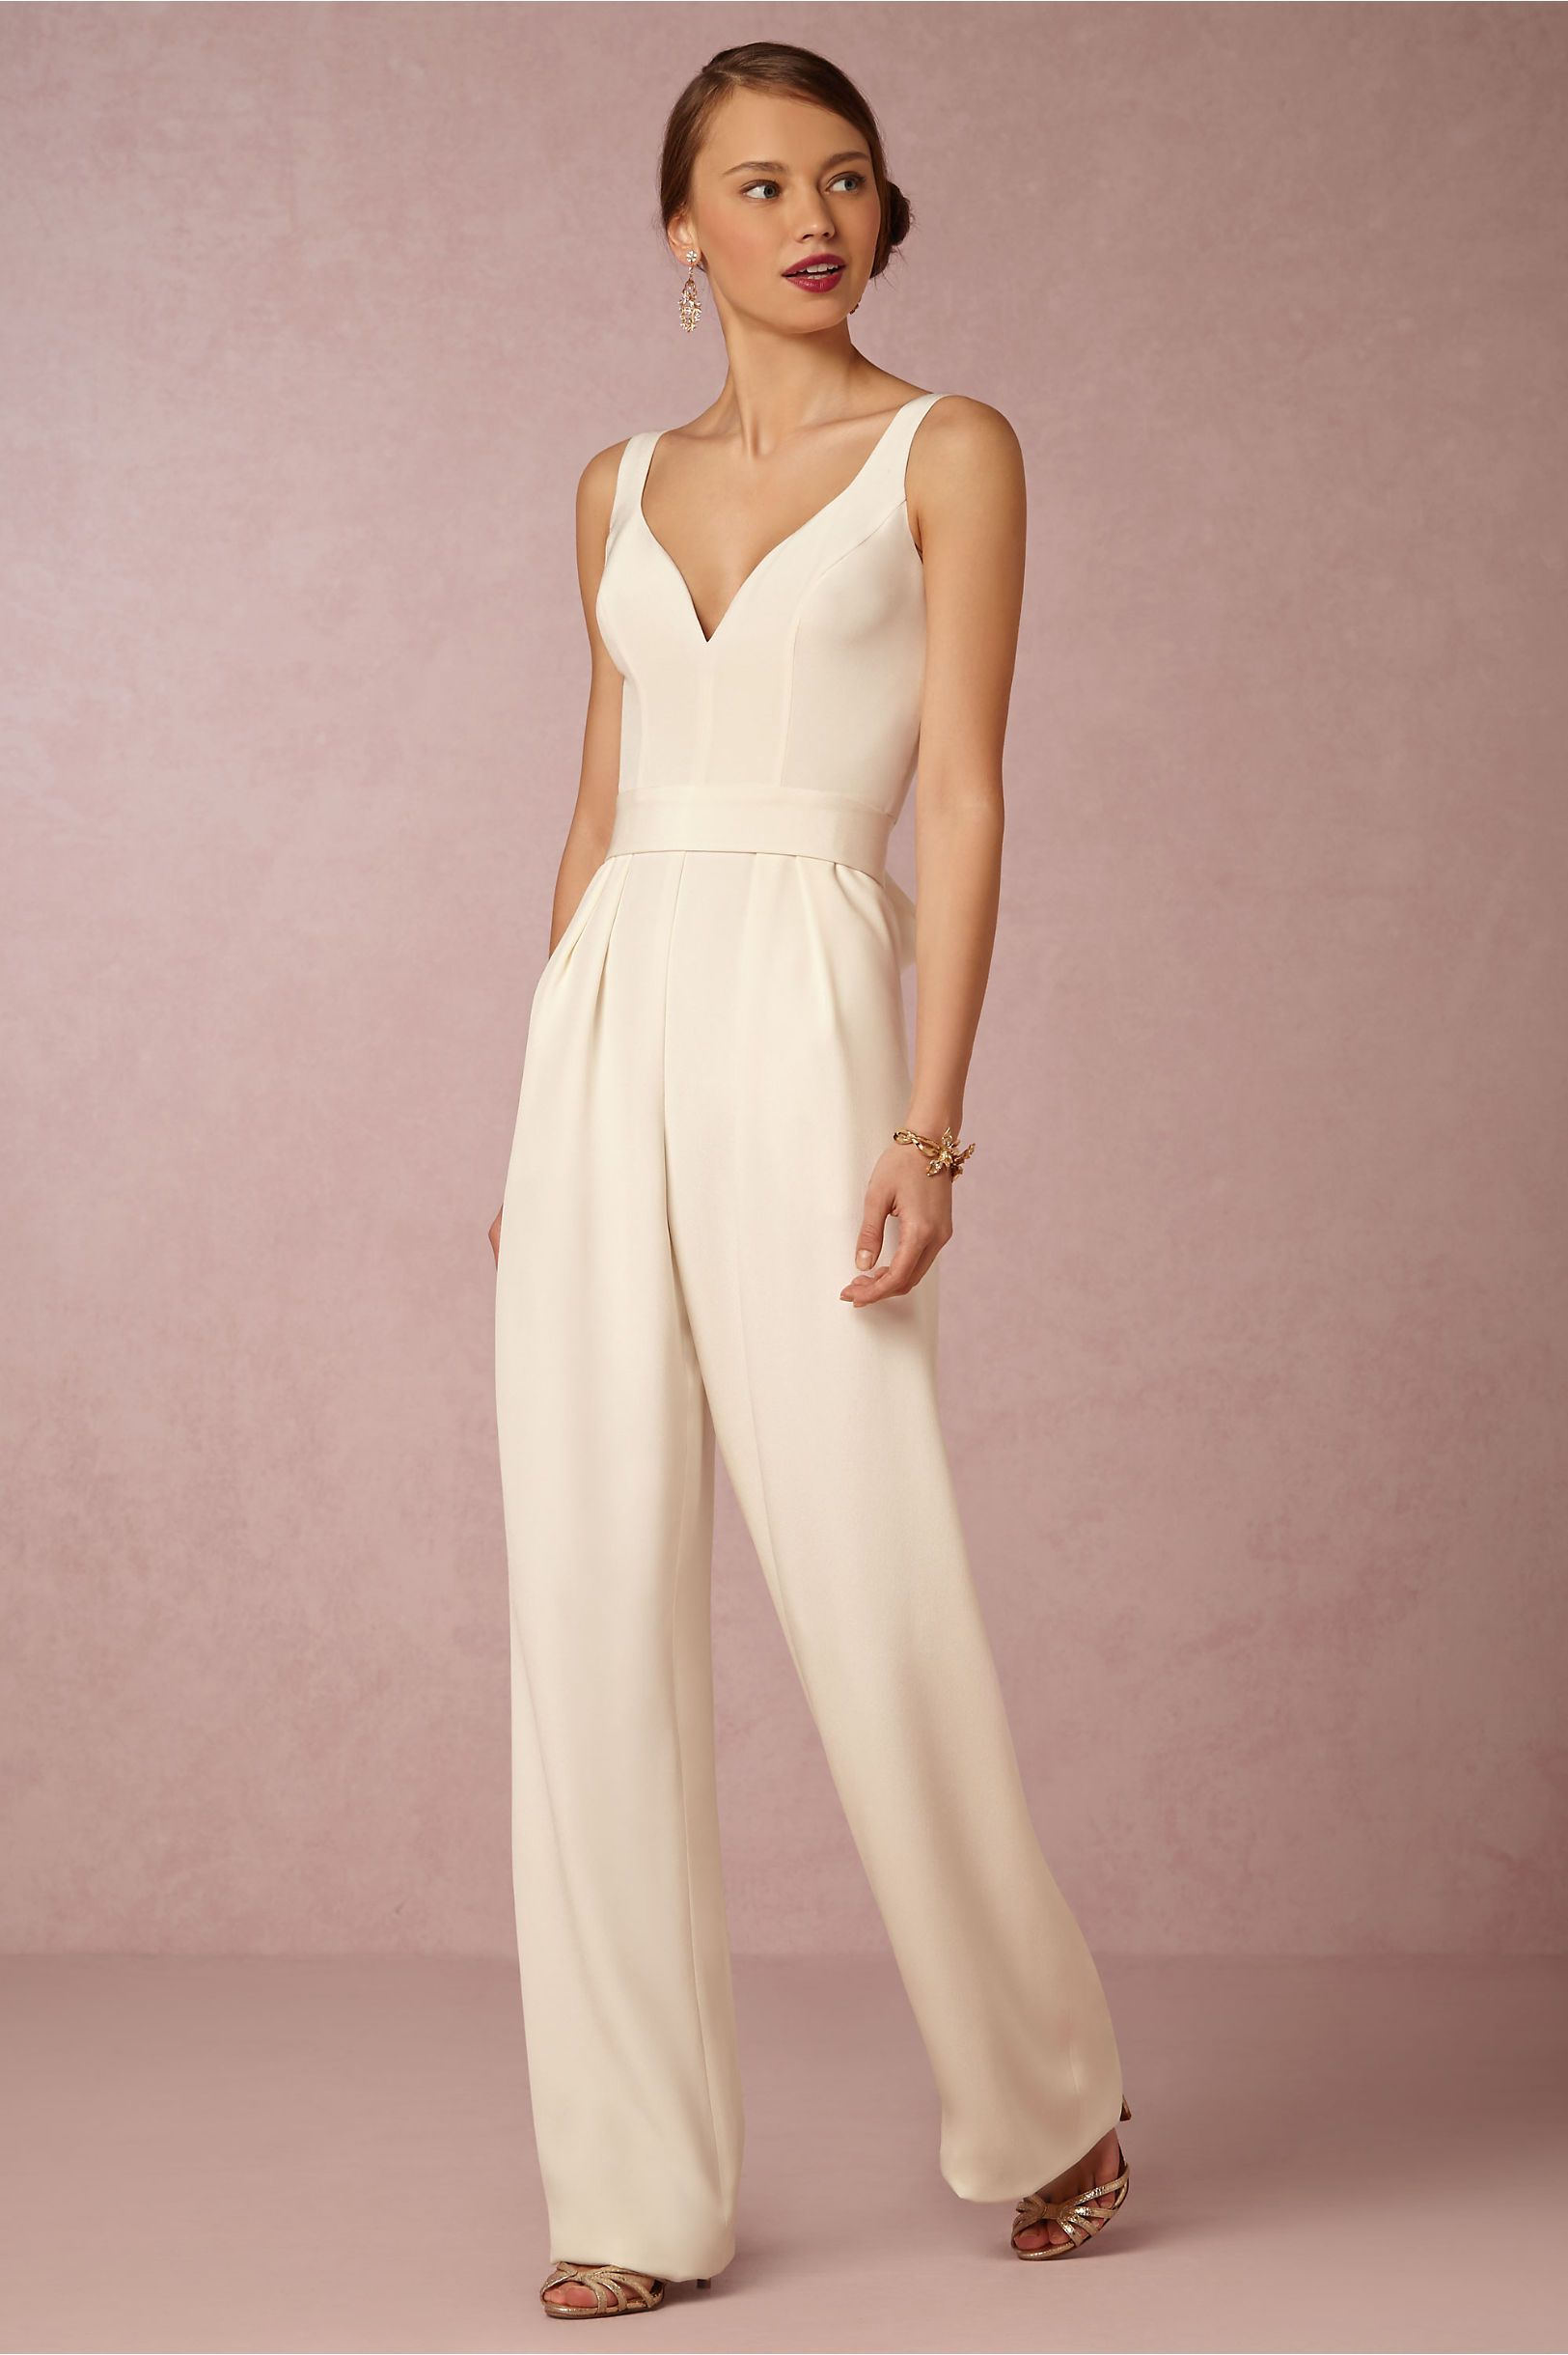 the perfect second, or courthouse wedding look for the bride ...